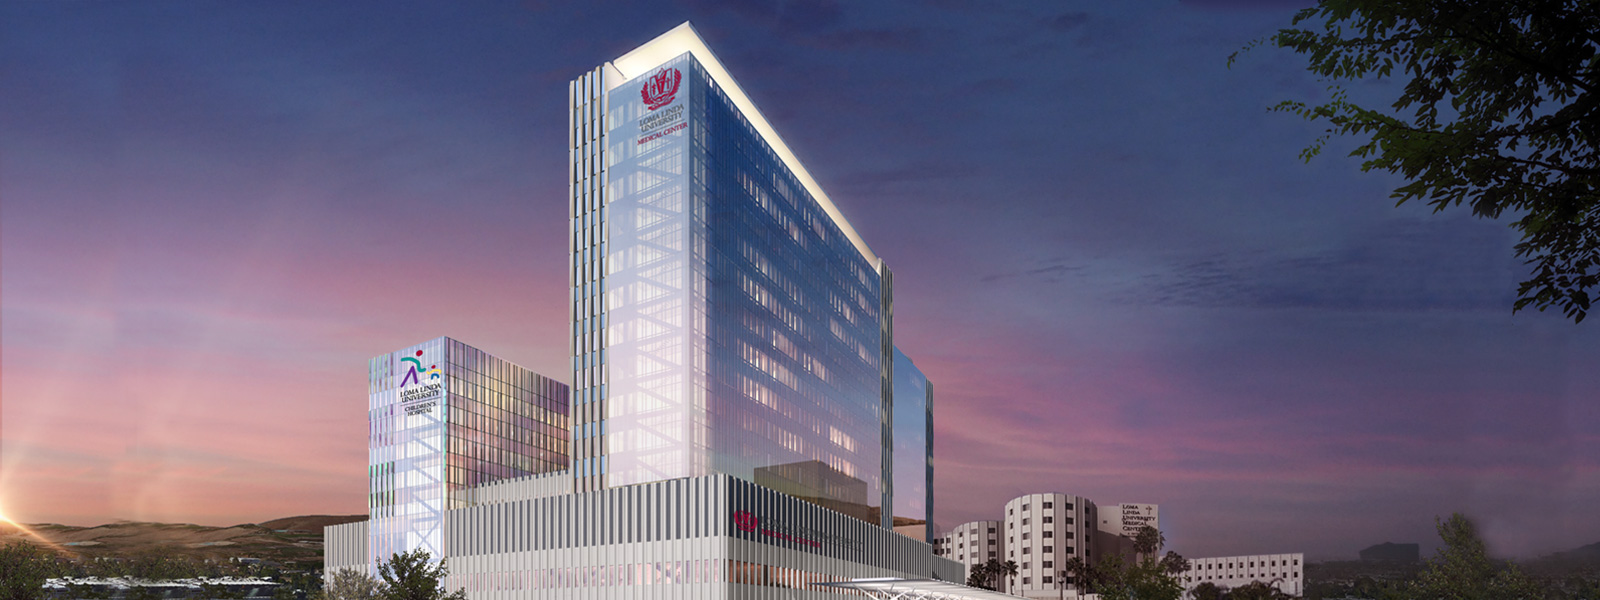 Vision 2020 Concept Building for Loma Linda University Health